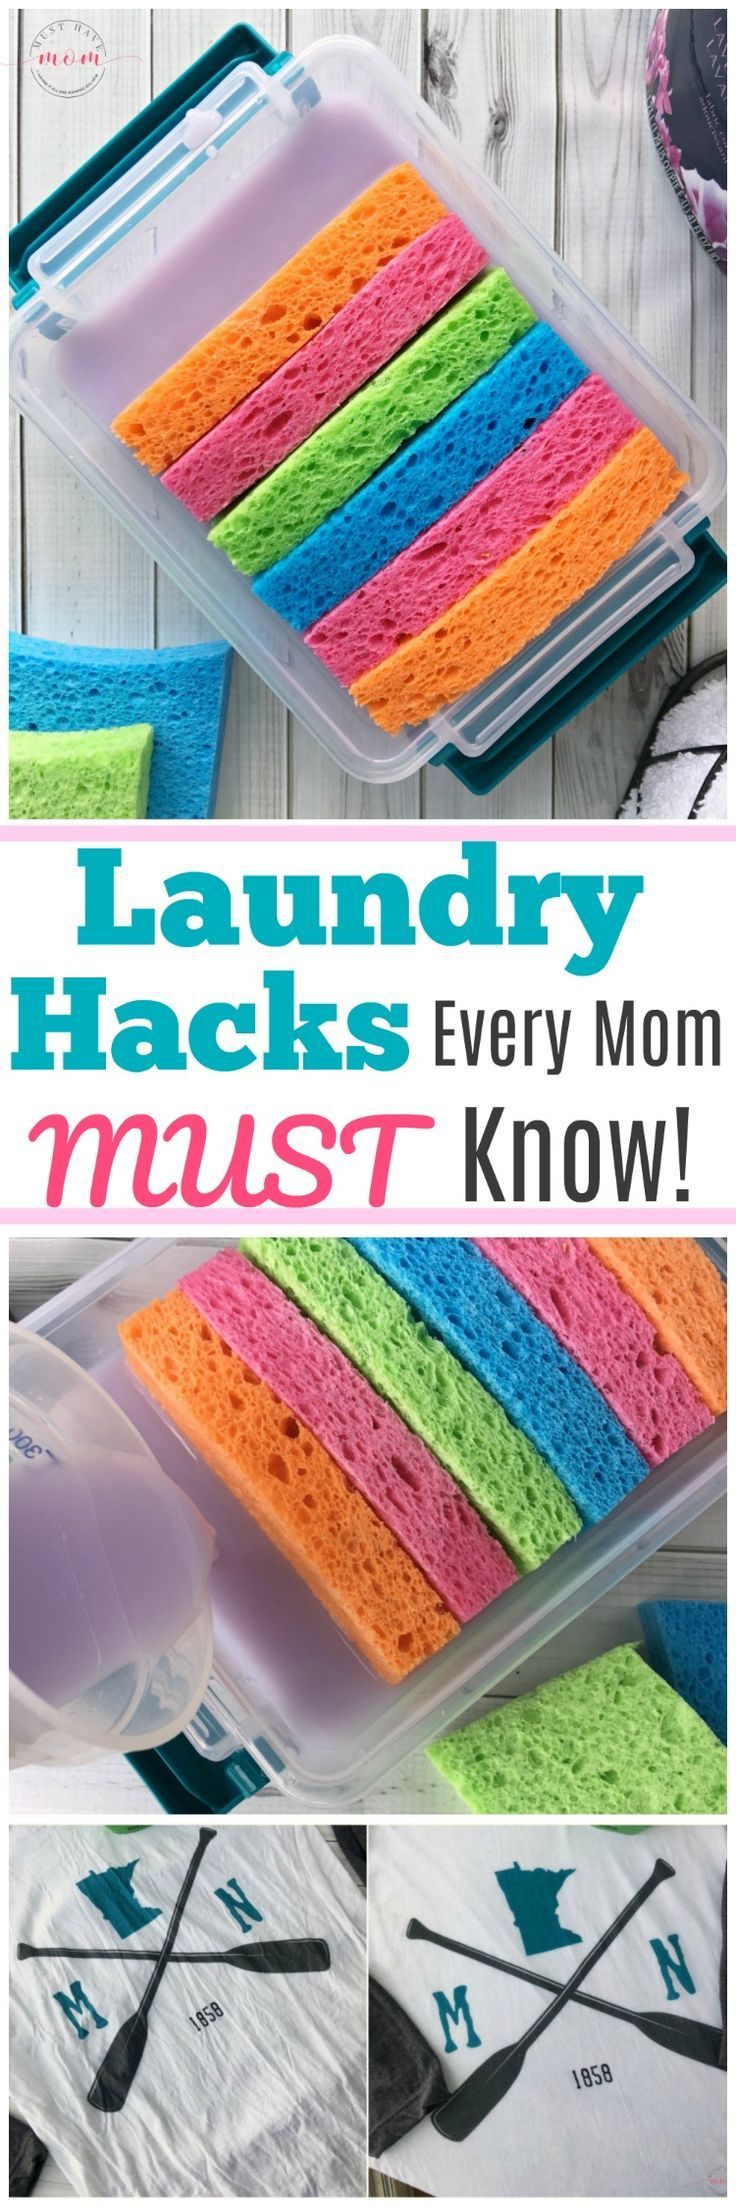 Laundry hacks every mom MUST know! How to get wrin…